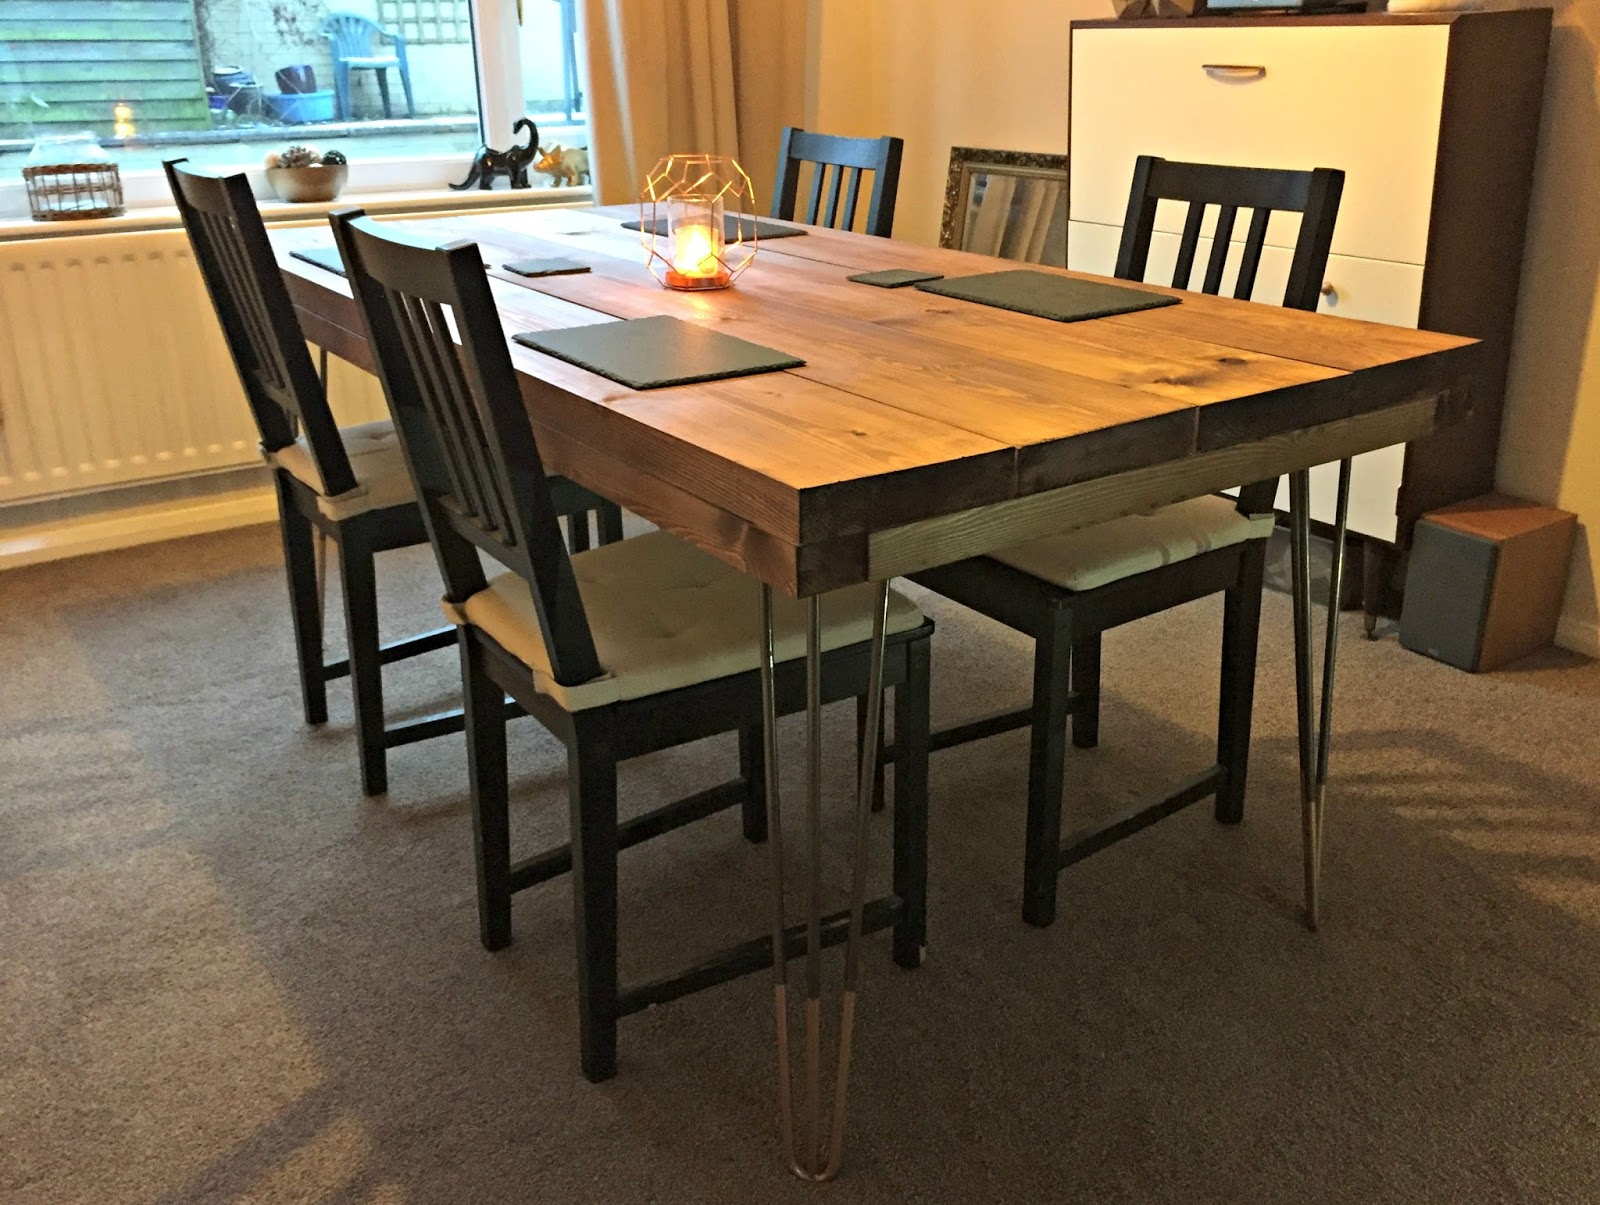 Diy tutorial rustic dining table with hairpin legs tea on the diy tutorial rustic dining table with hairpin legs by the hairpin leg company watchthetrailerfo